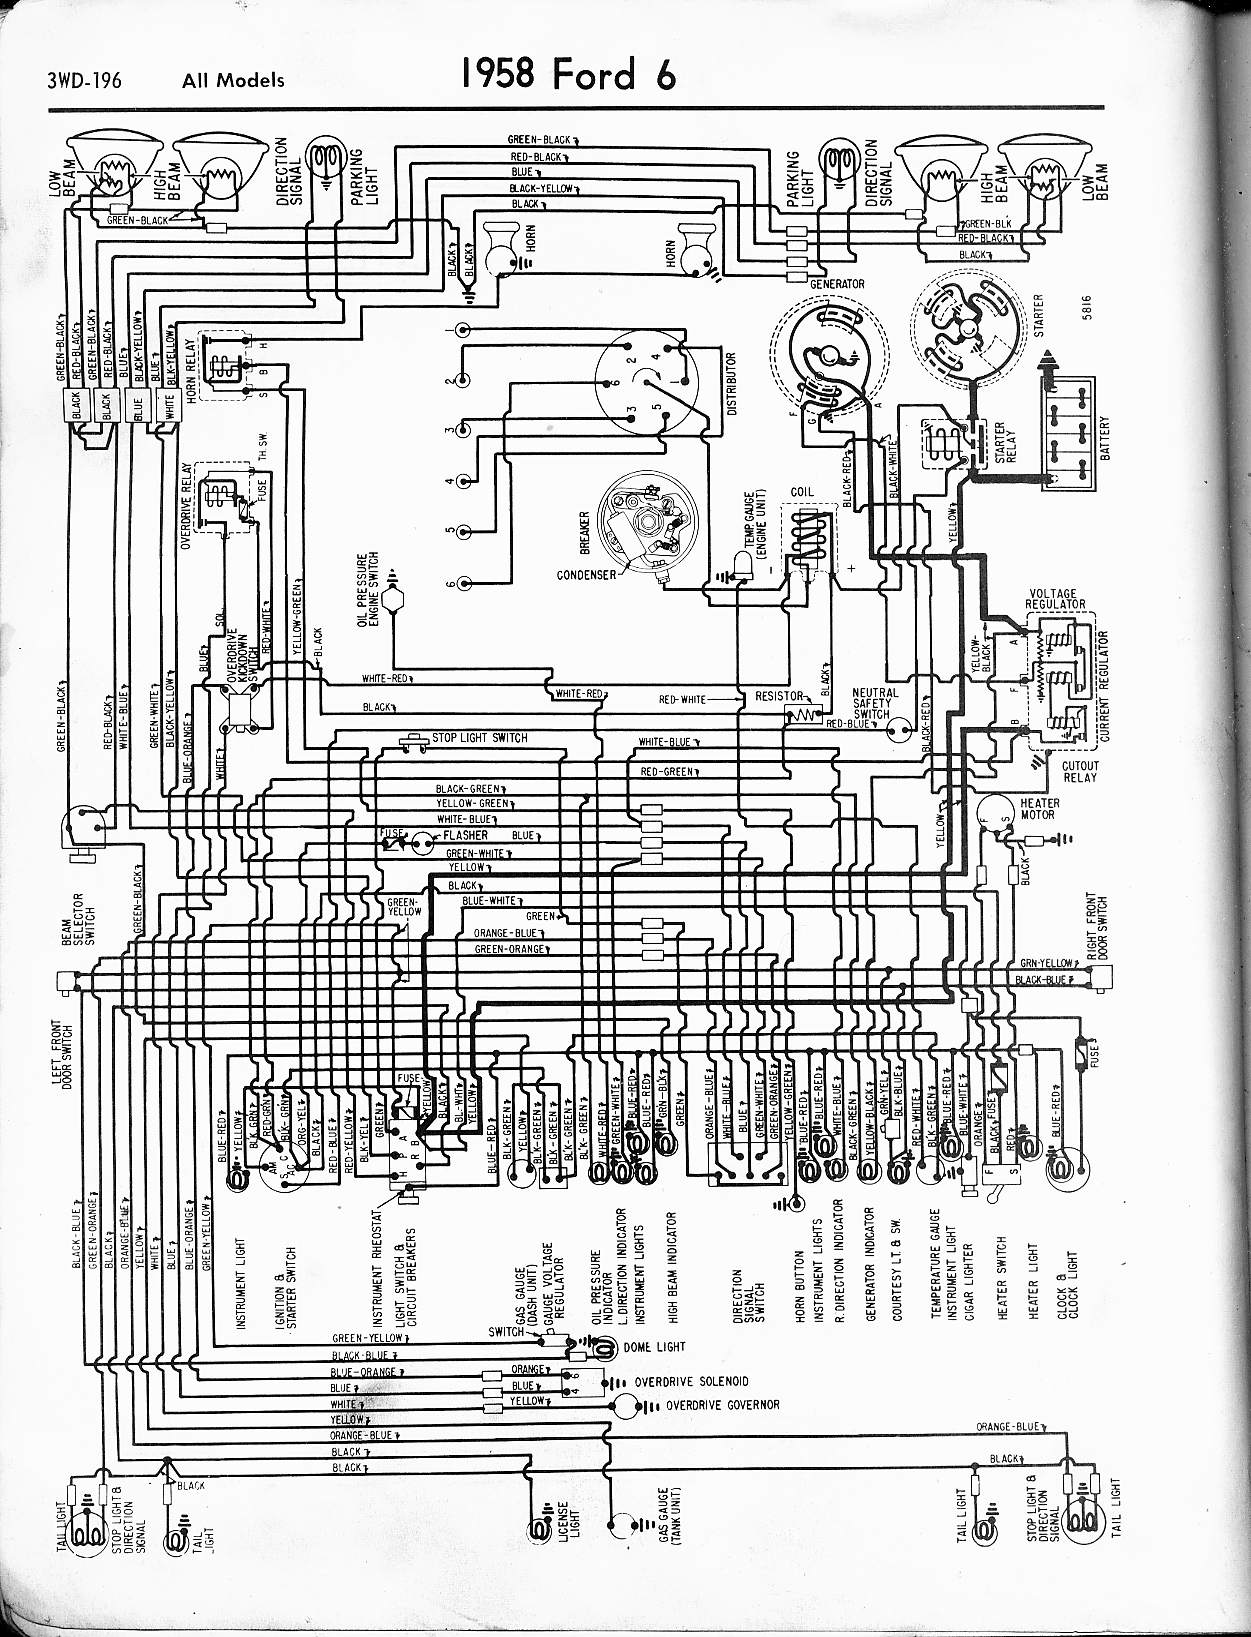 ford wiring ford explorer wiring harness diagram ewiring ford wiring 1965 mustang fuse block diagram ford wiring diagrams 1958 6 cyl all models